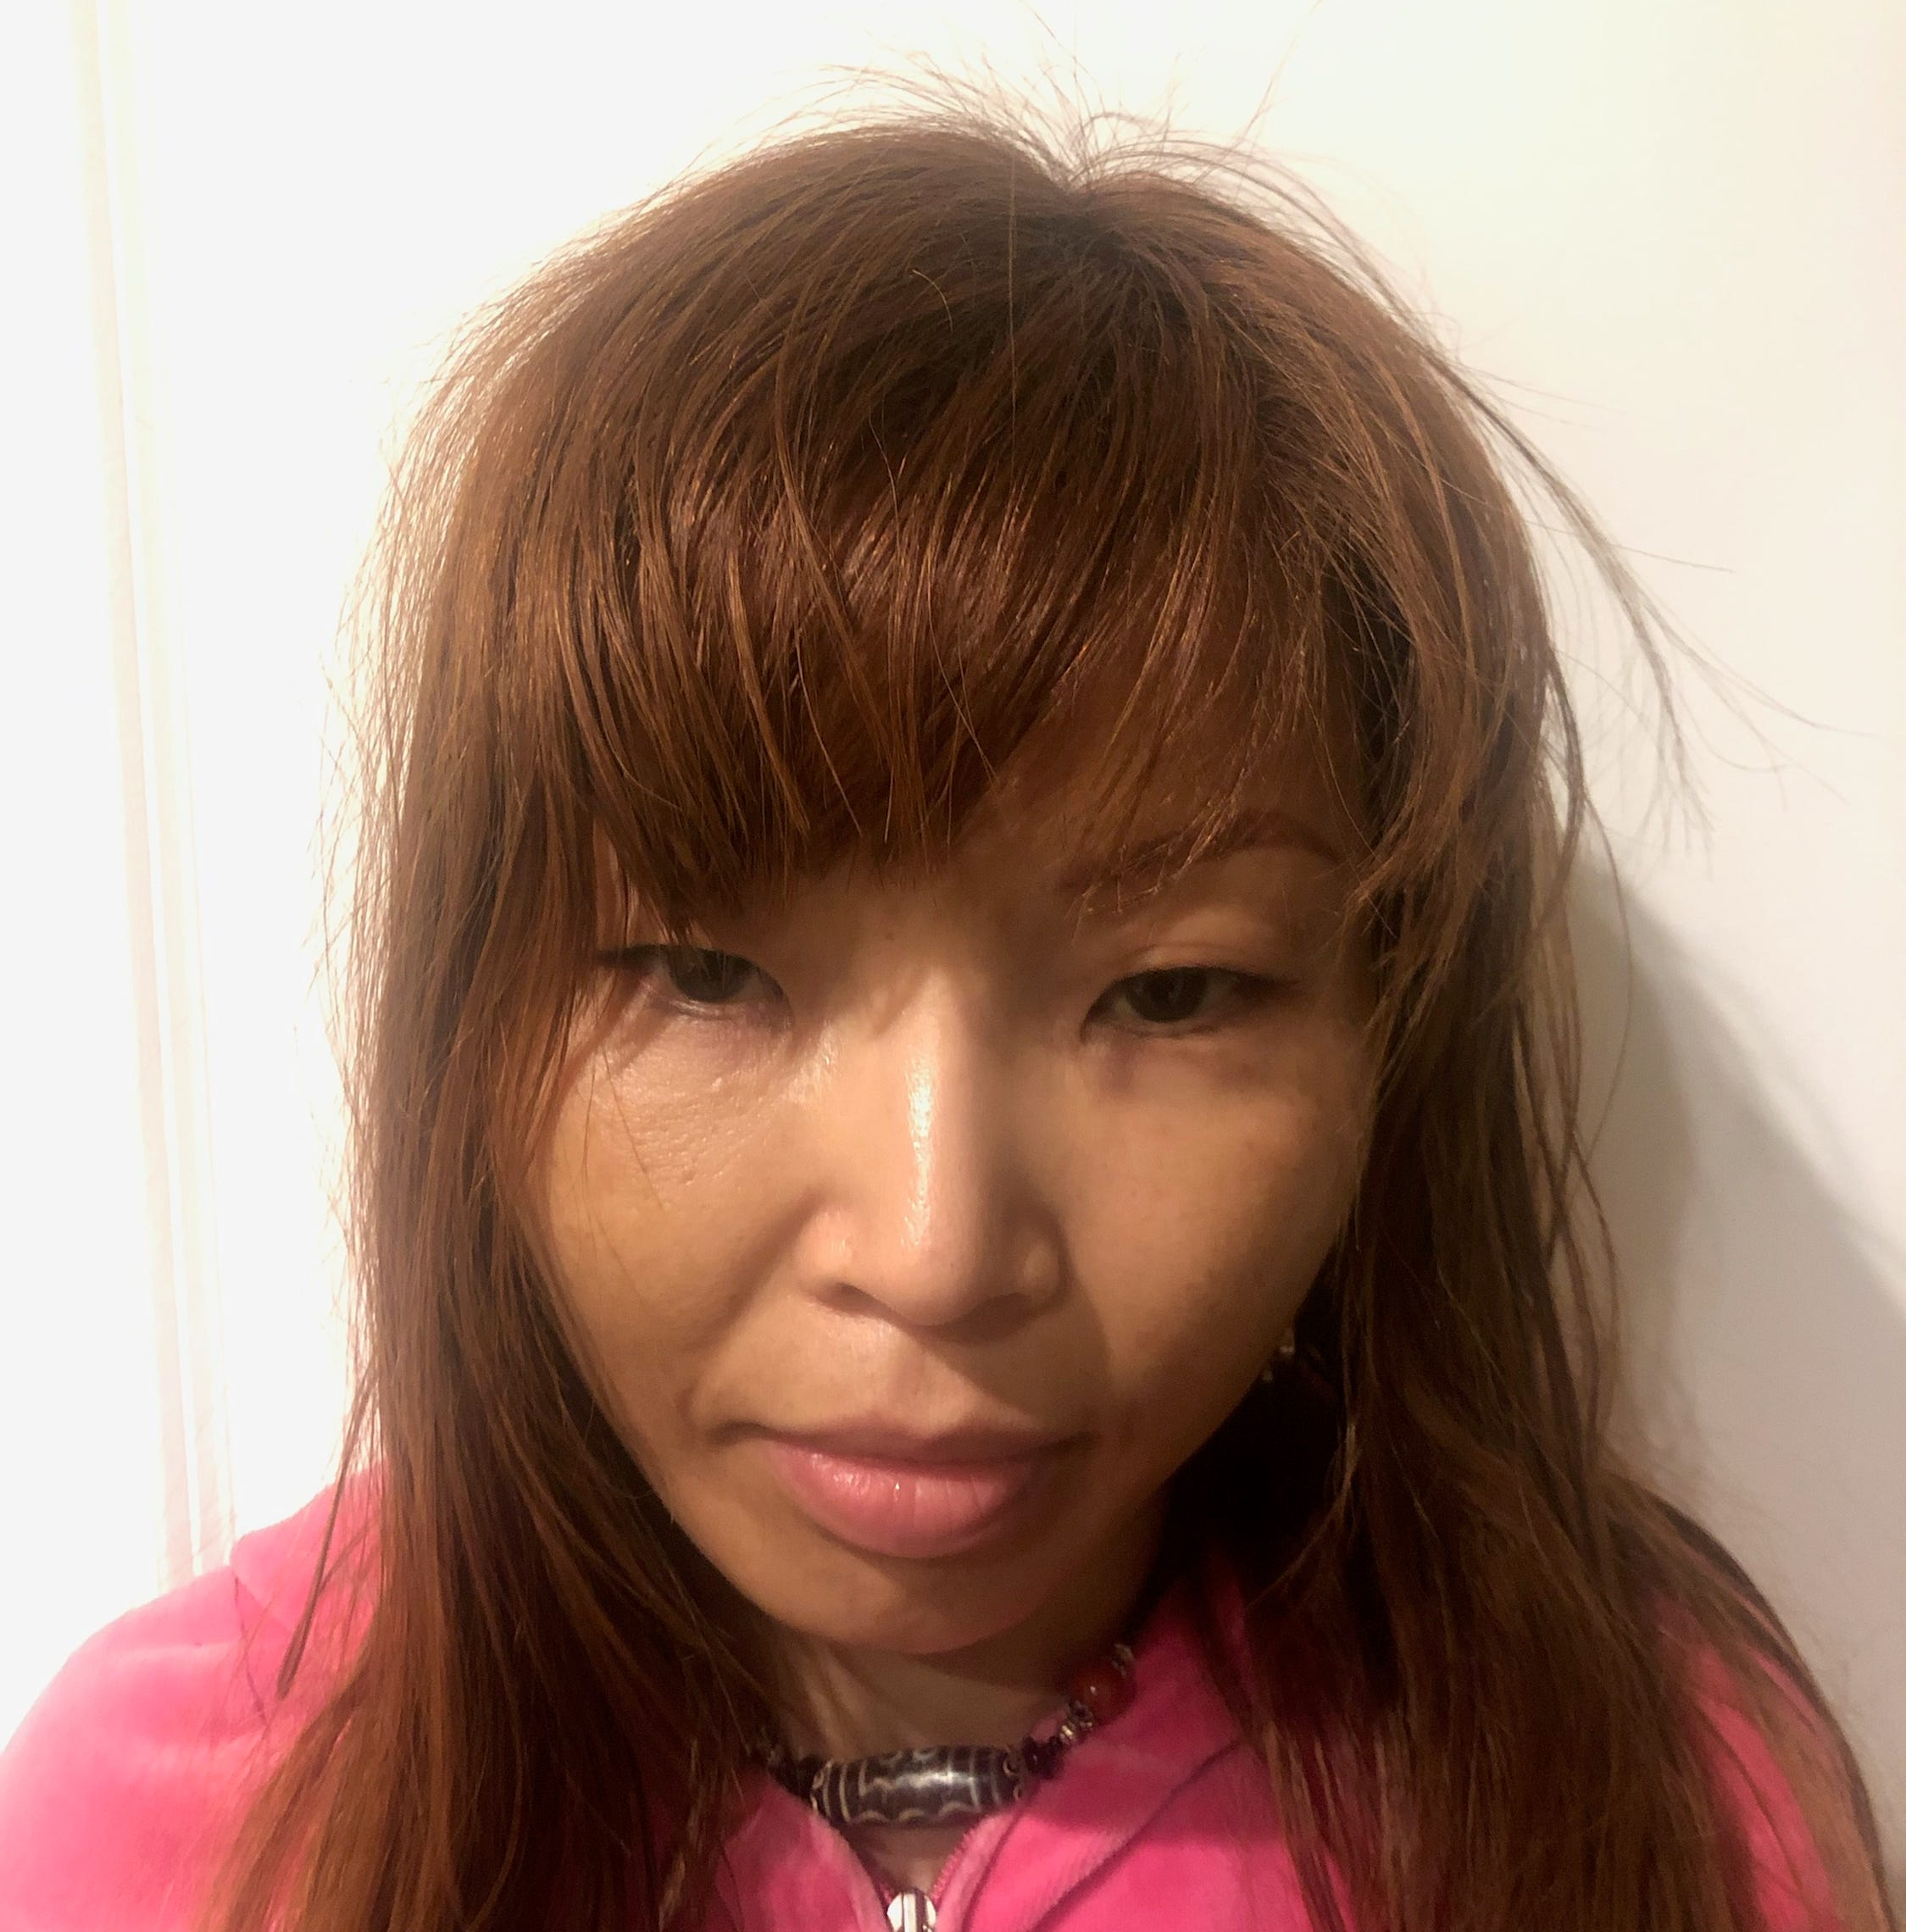 Hillsborough prostitution arrest made at Route 206 massage parlor